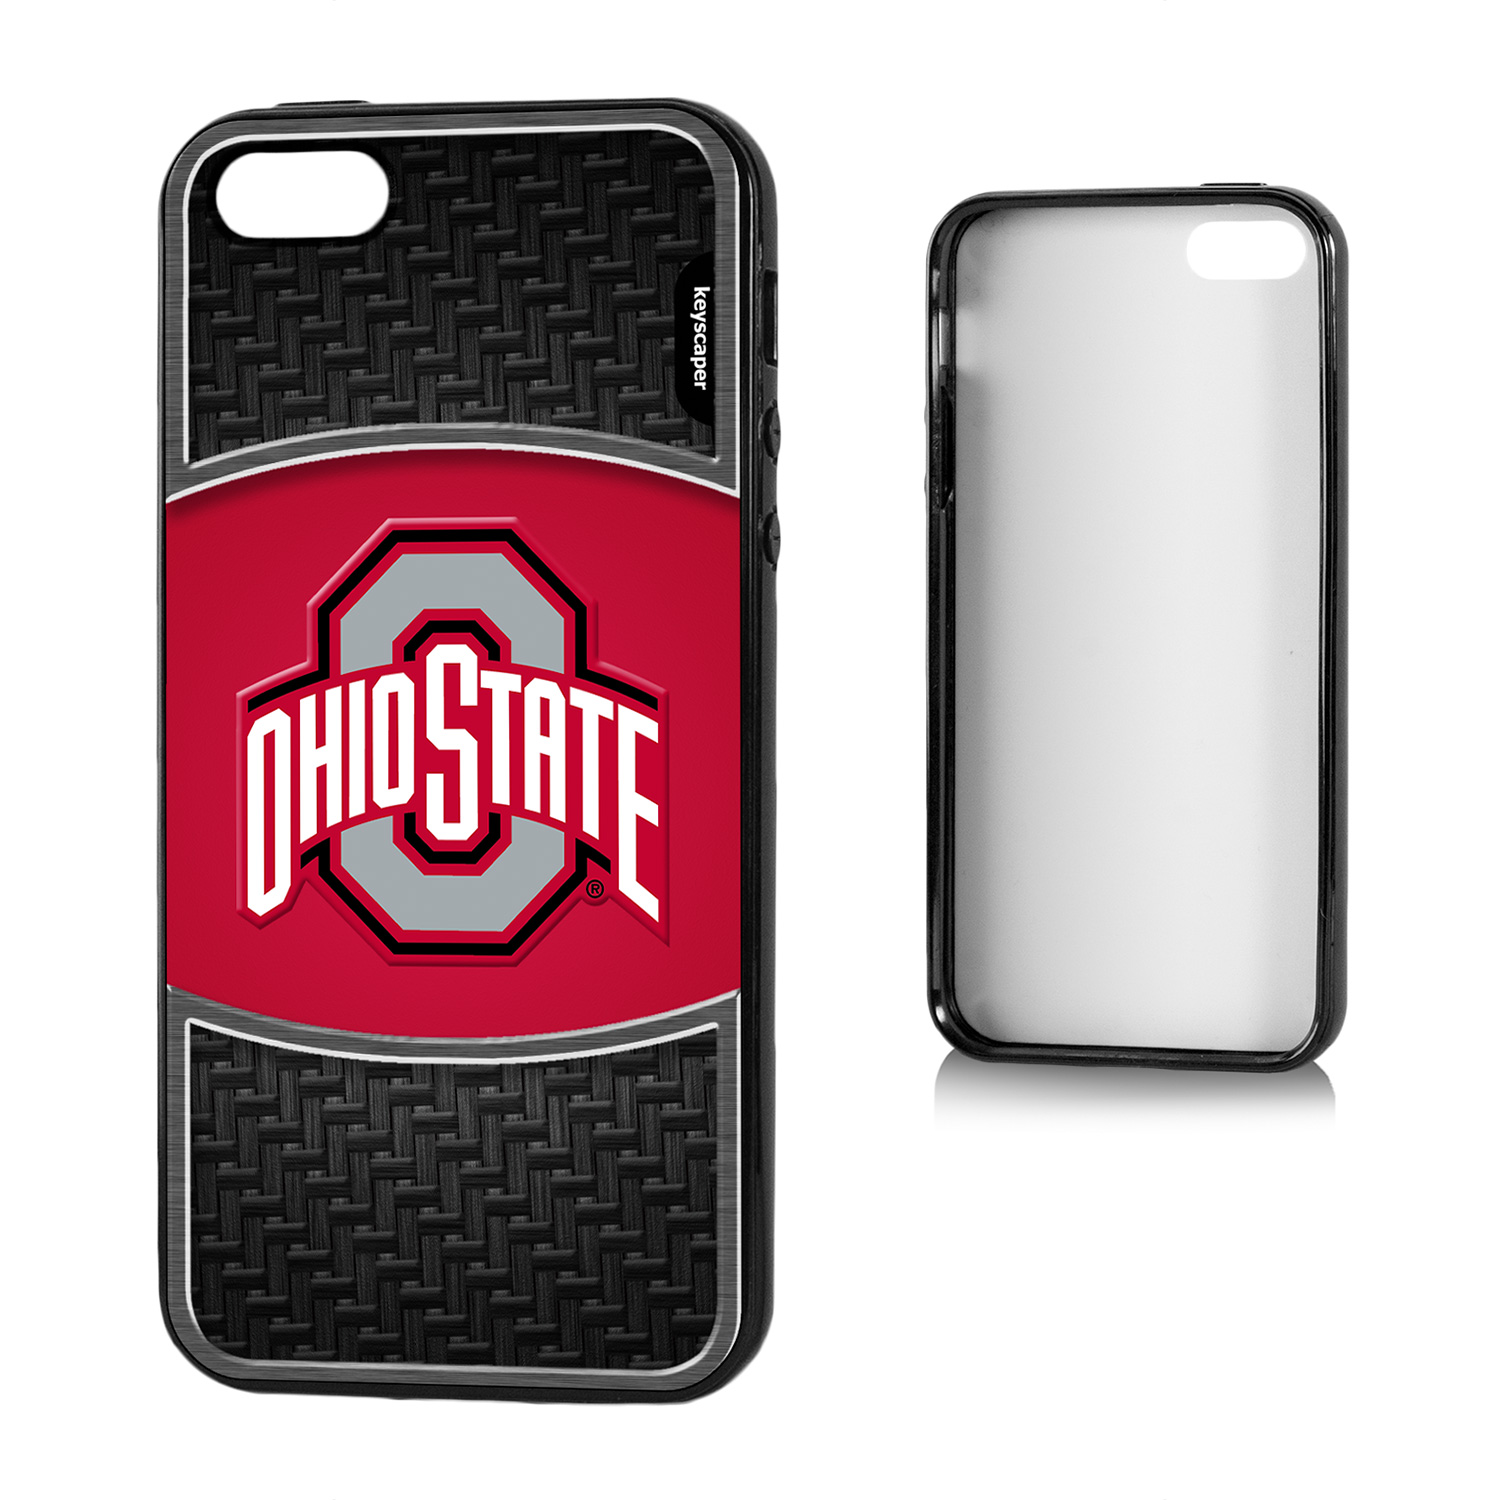 Ohio State Buckeyes iPhone 5 and iPhone 5s Bumper Case